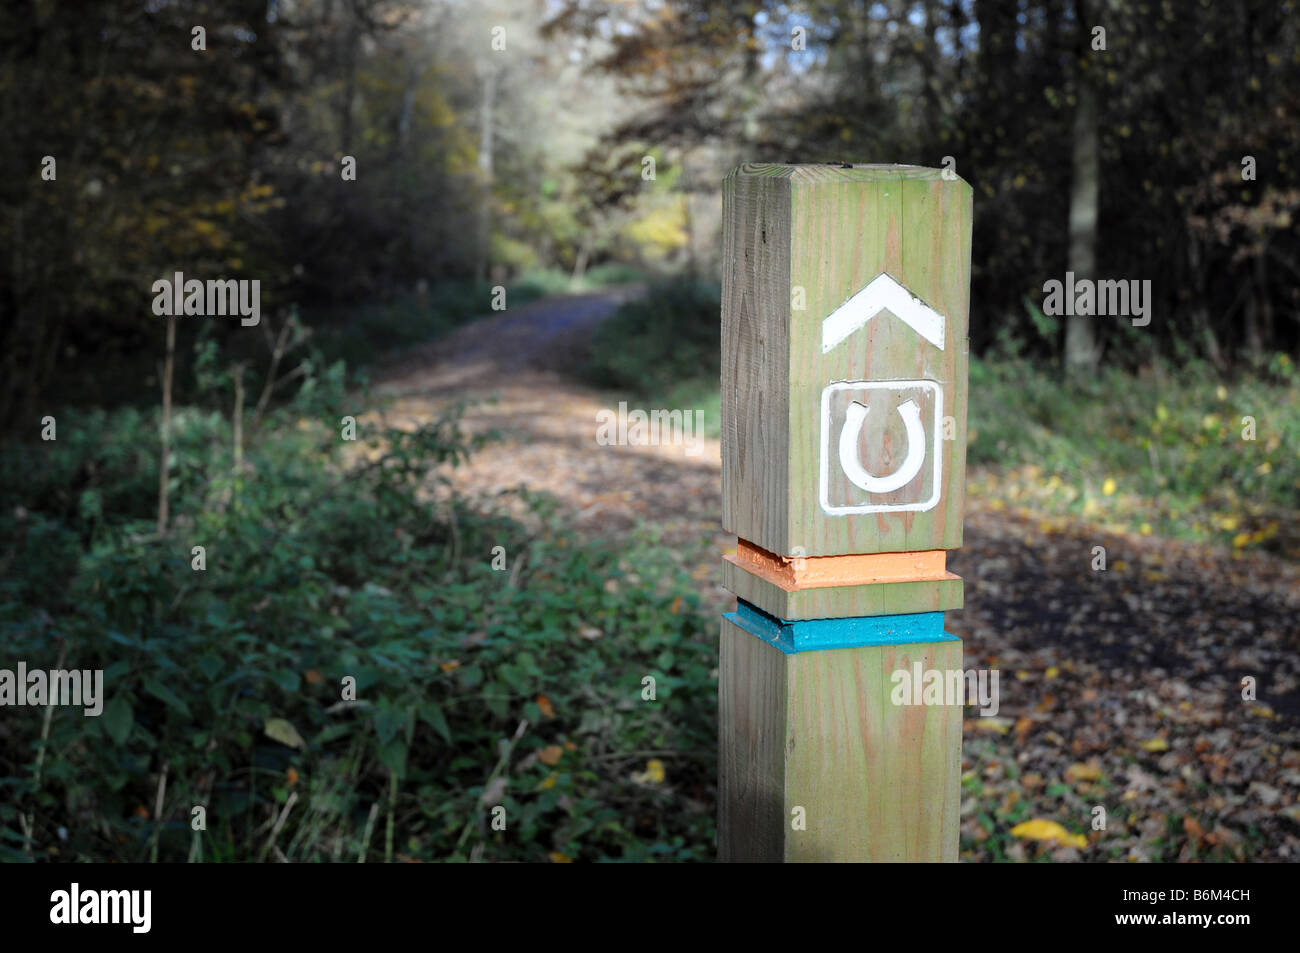 Bridleway sign post in rural area. Fineshade Wood, Northamptonshire, England, UK - Stock Image